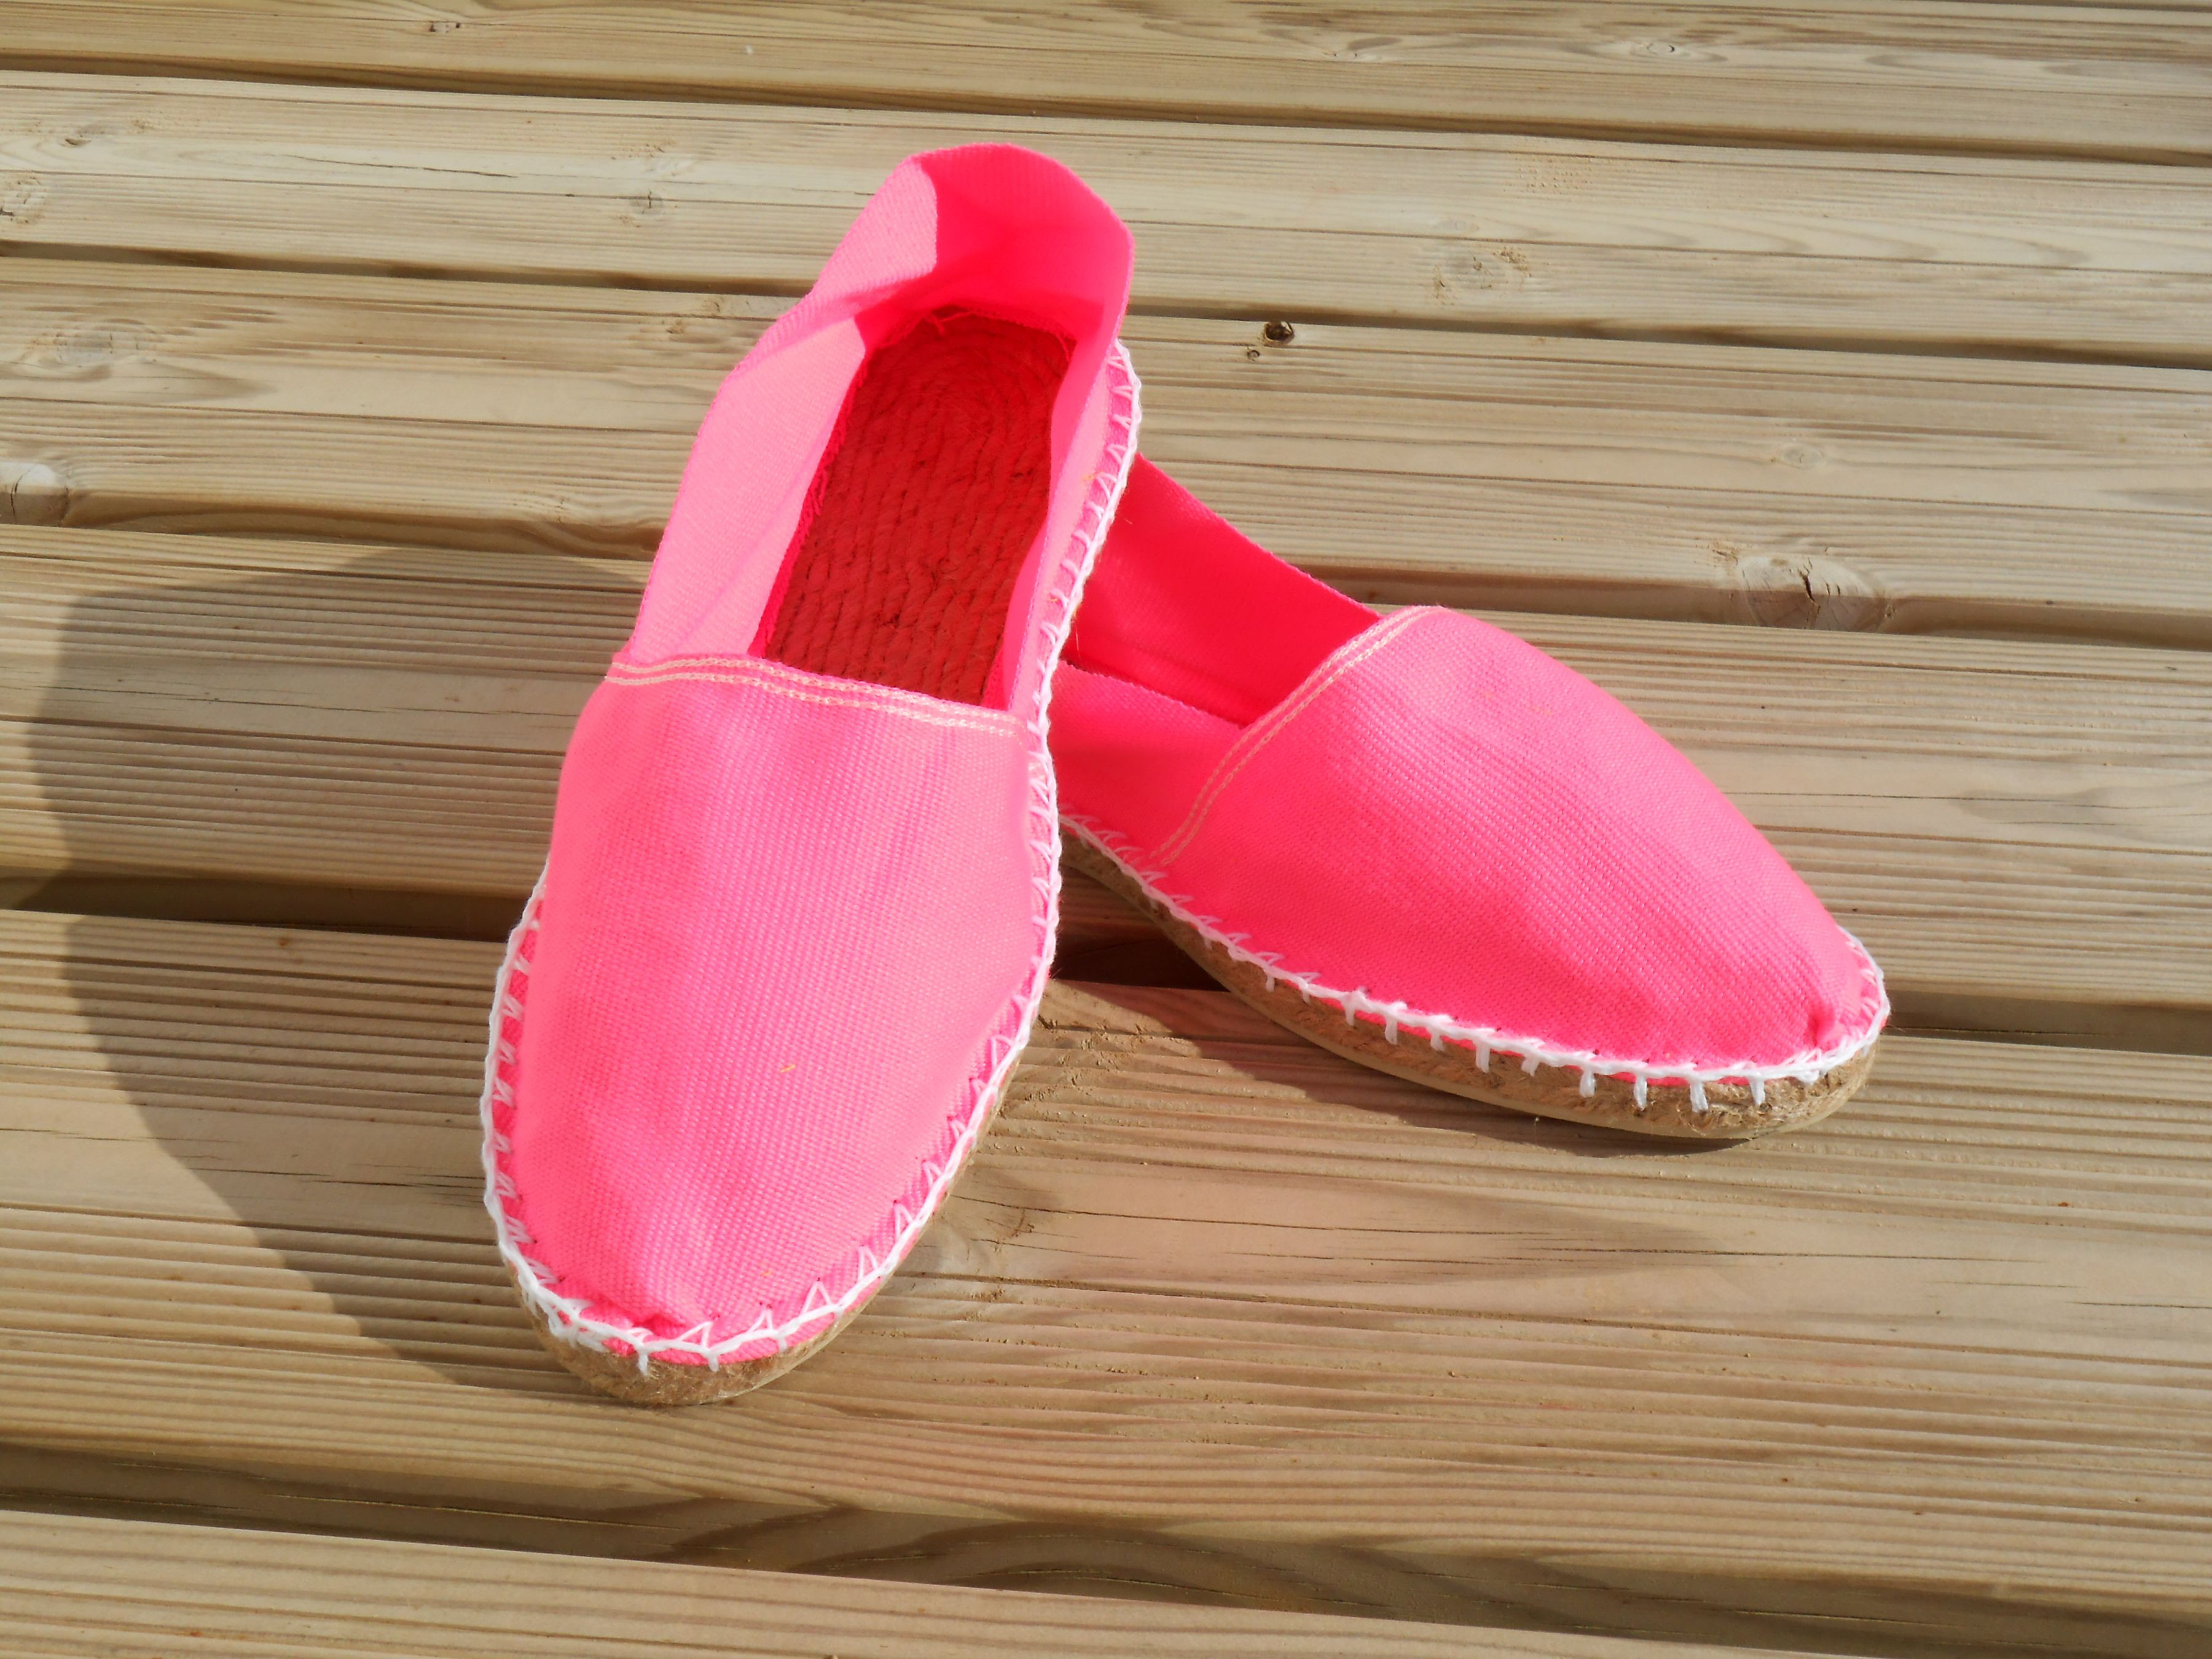 Espadrilles basques rose fluo taille 40